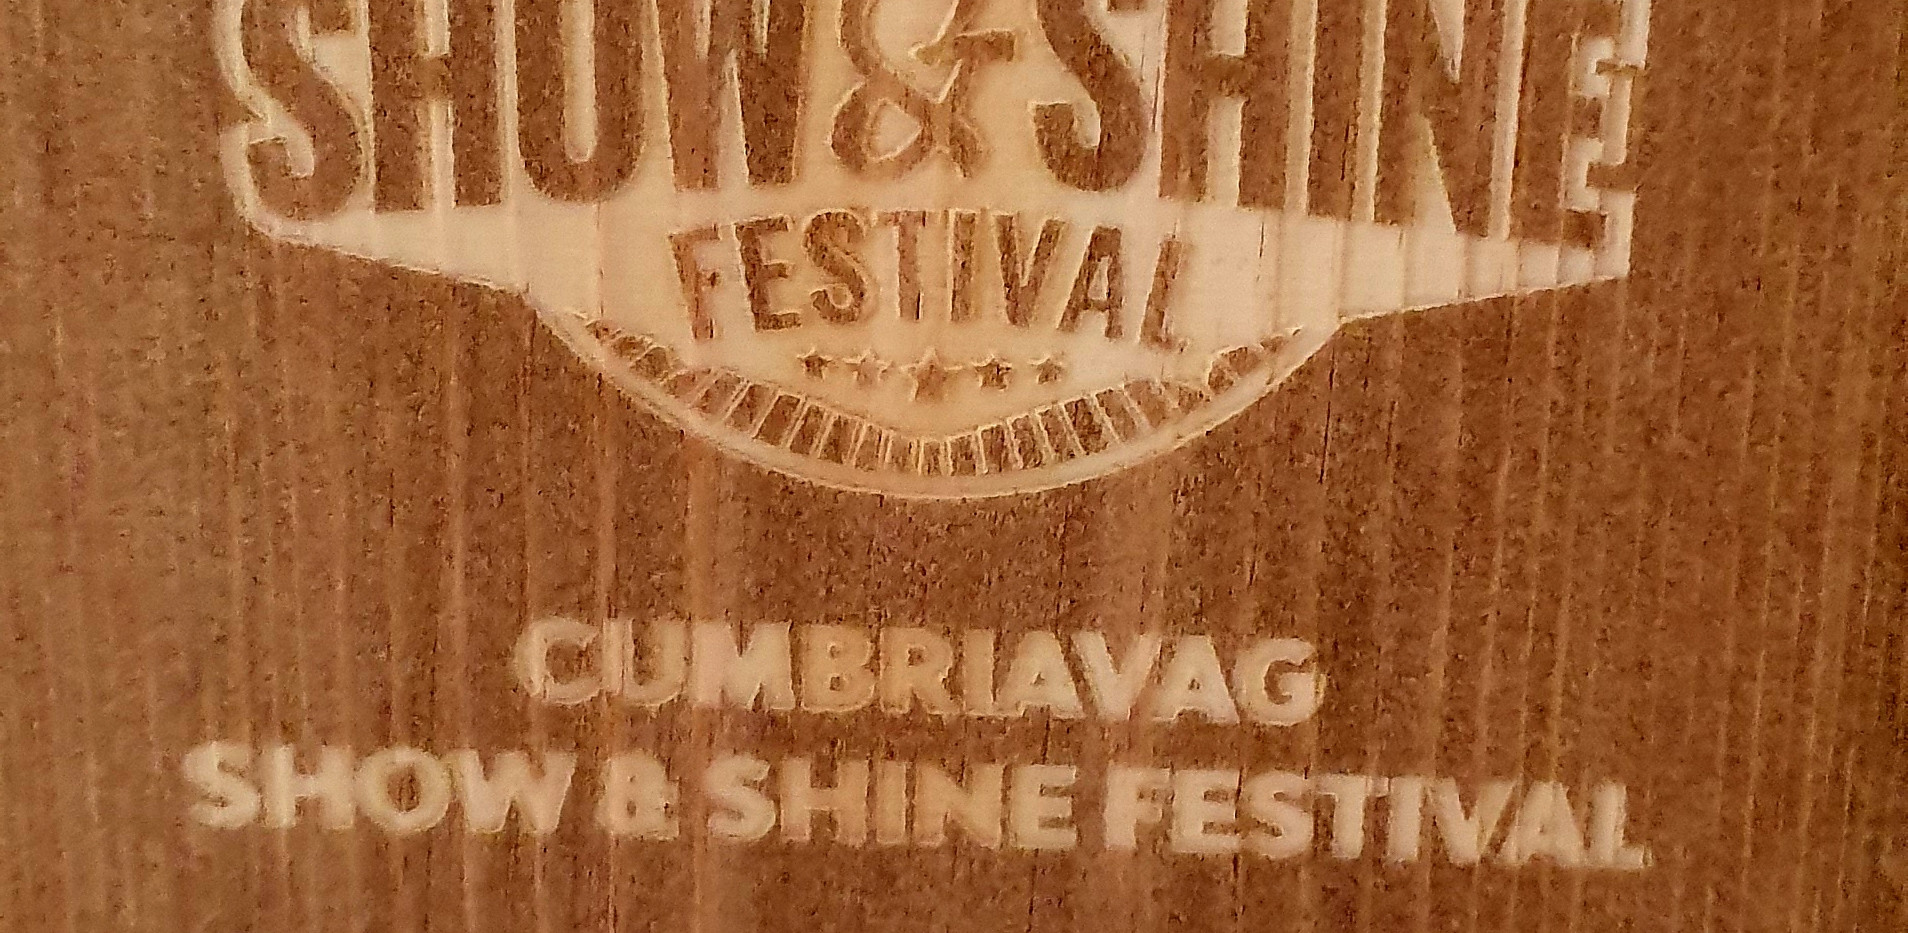 CumbriaVAG Awards